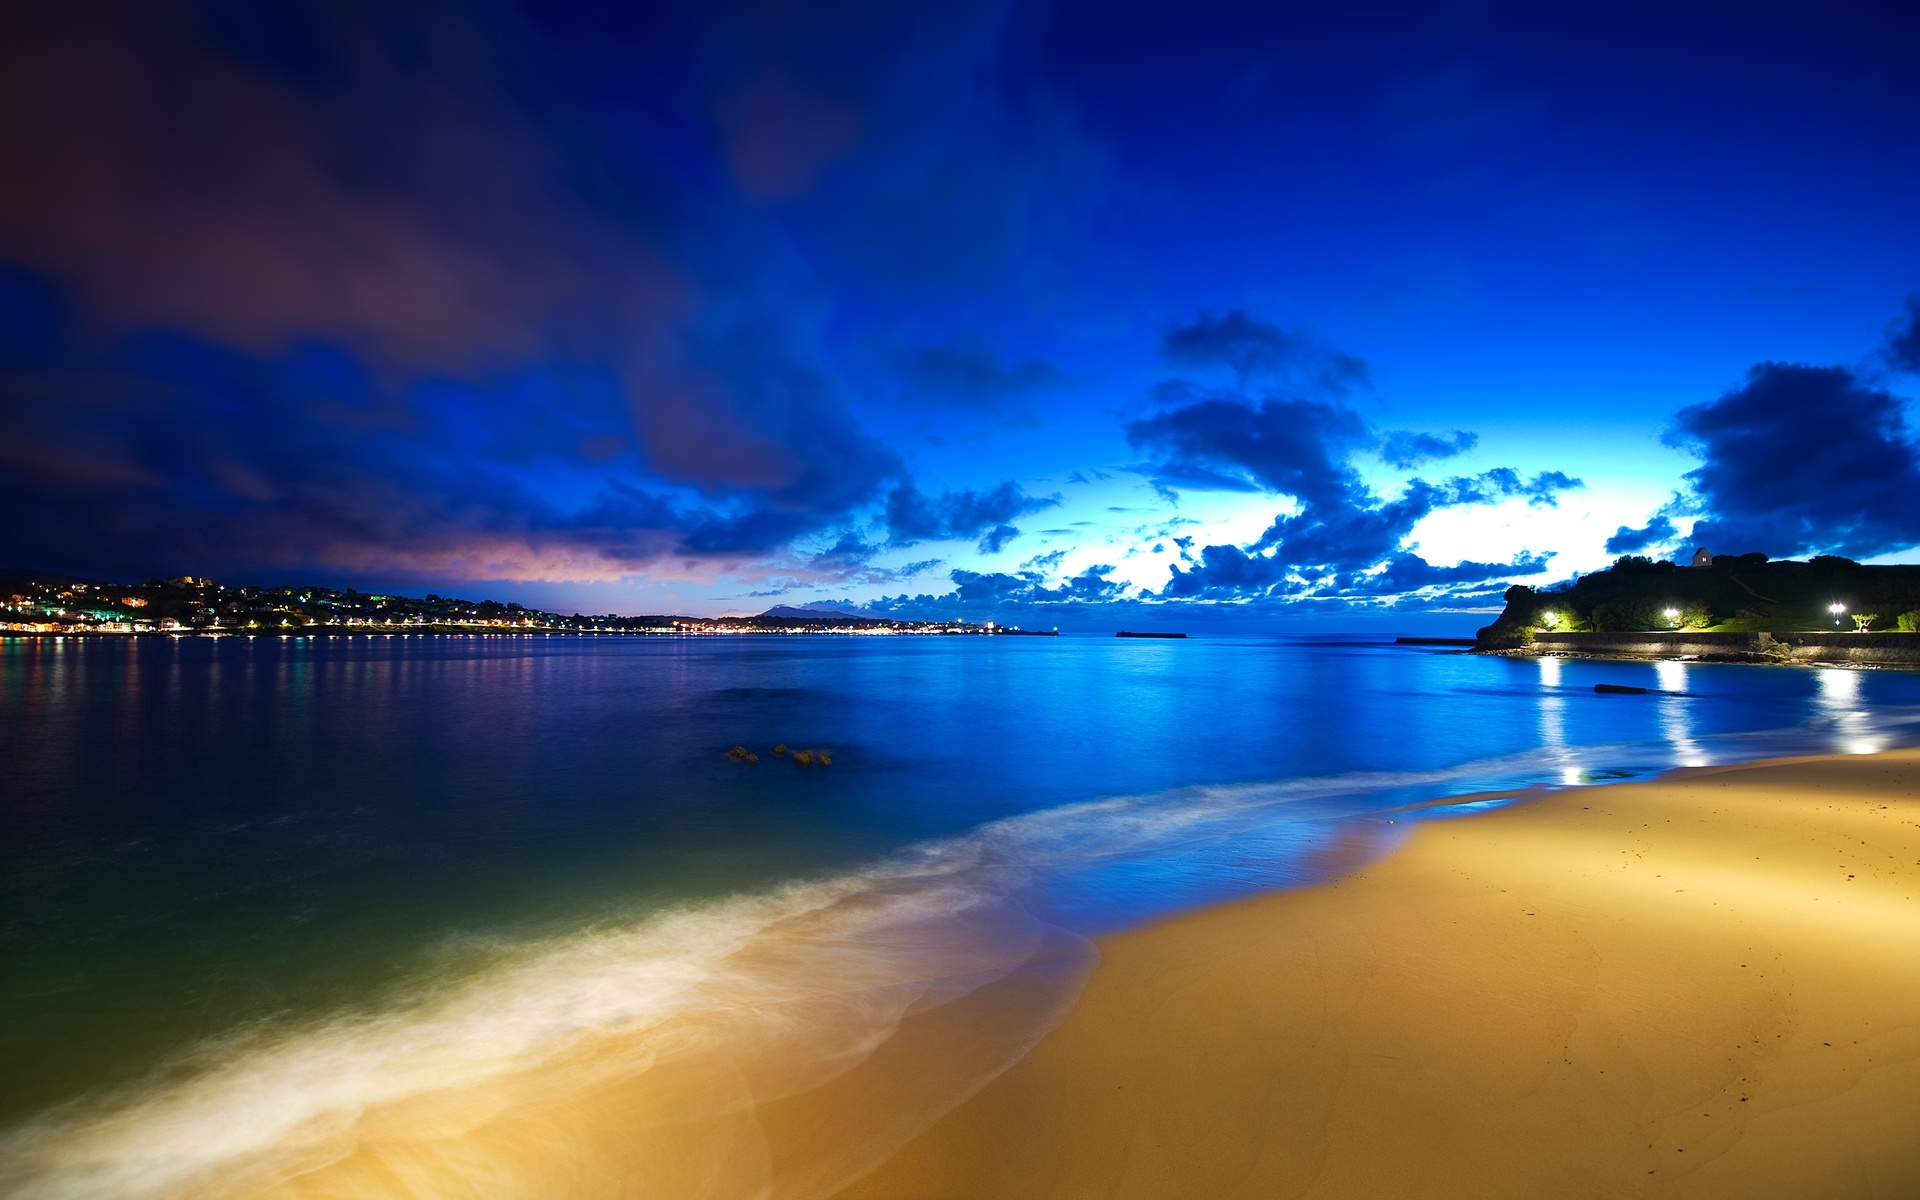 desktop wallpaper beaches   wwwwallpapers in hdcom 1920x1200